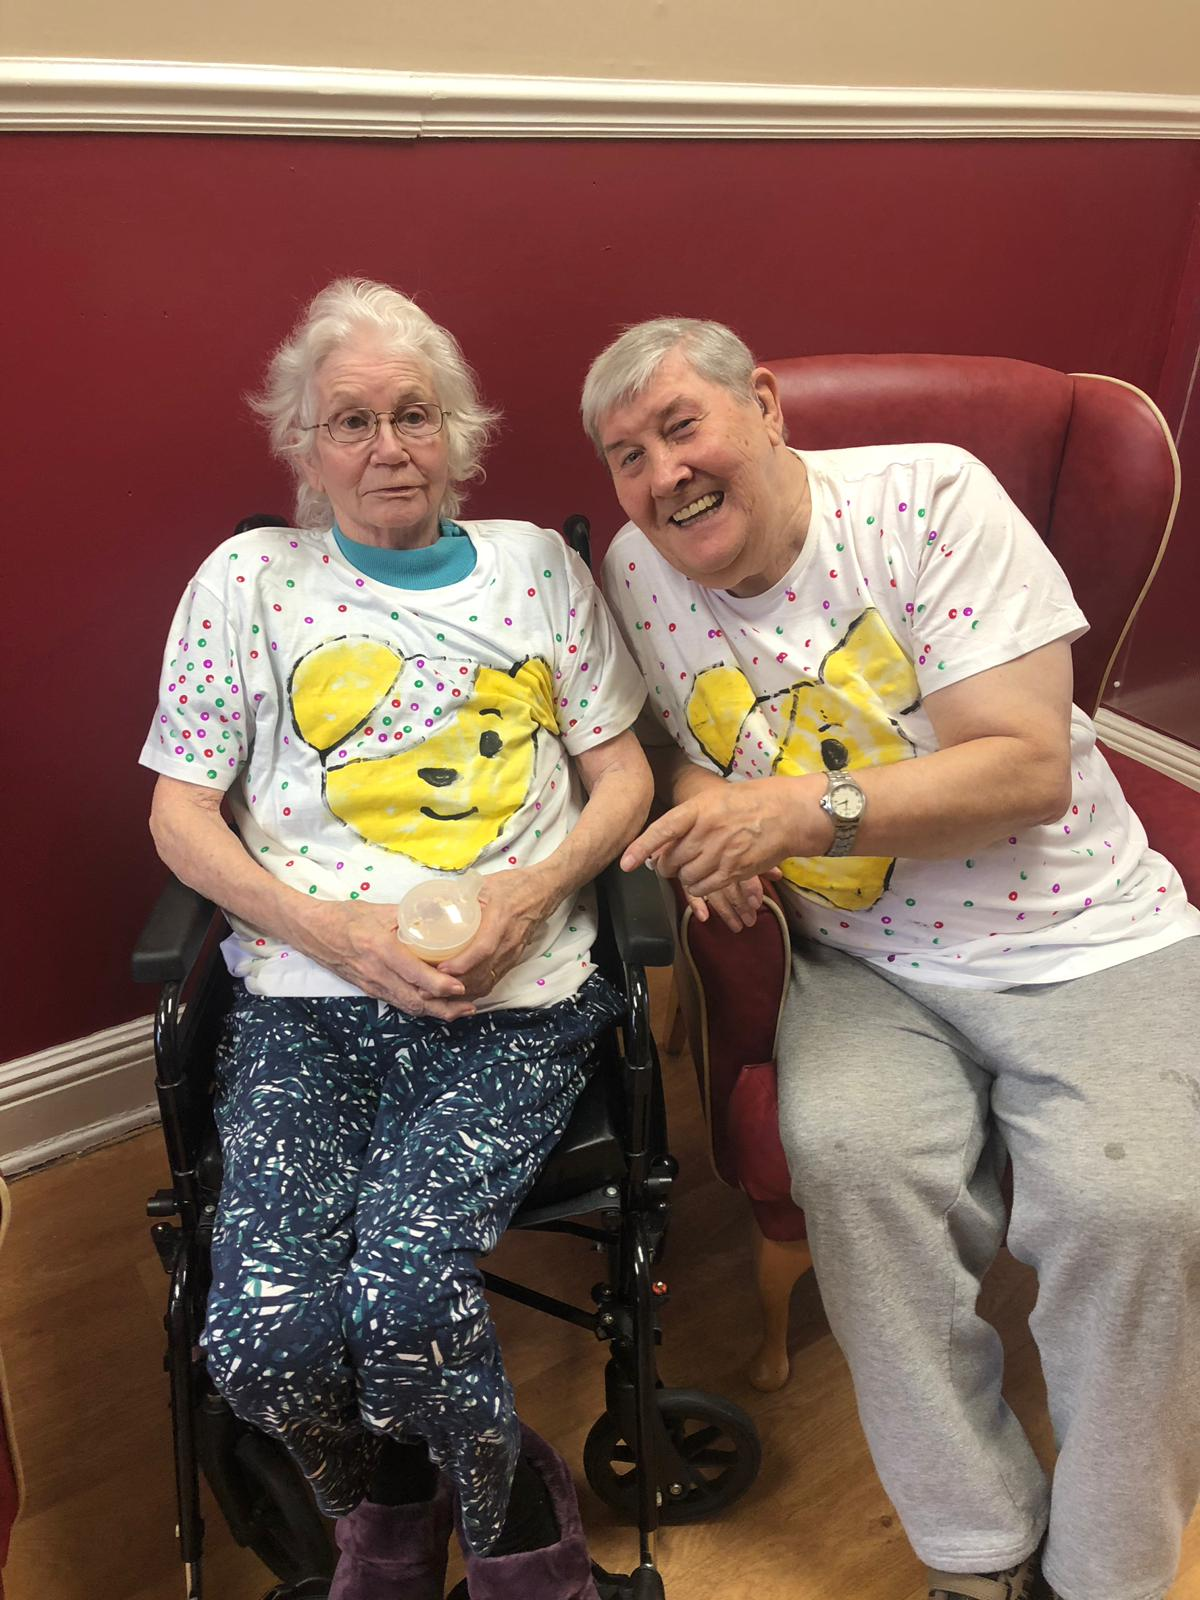 Children In Need 7: Key Healthcare is dedicated to caring for elderly residents in safe. We have multiple dementia care homes including our care home middlesbrough, our care home St. Helen and care home saltburn. We excel in monitoring and improving care levels.